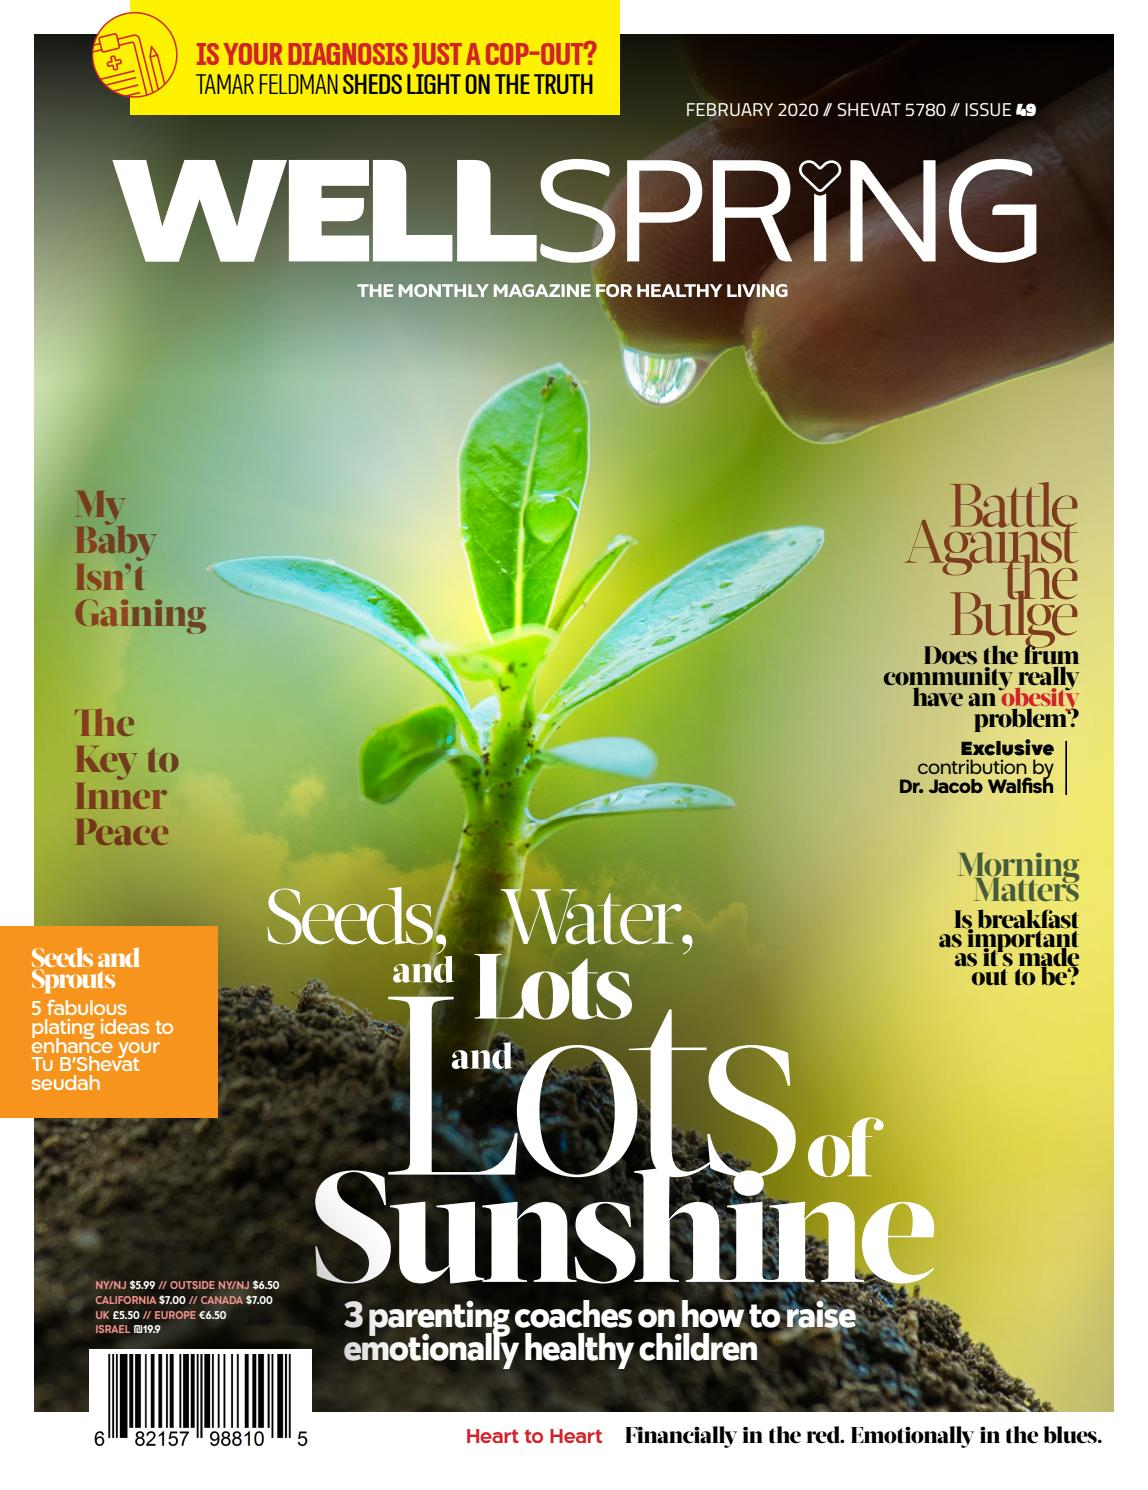 Wellspring Issue #49 by The Wellspring - issuu